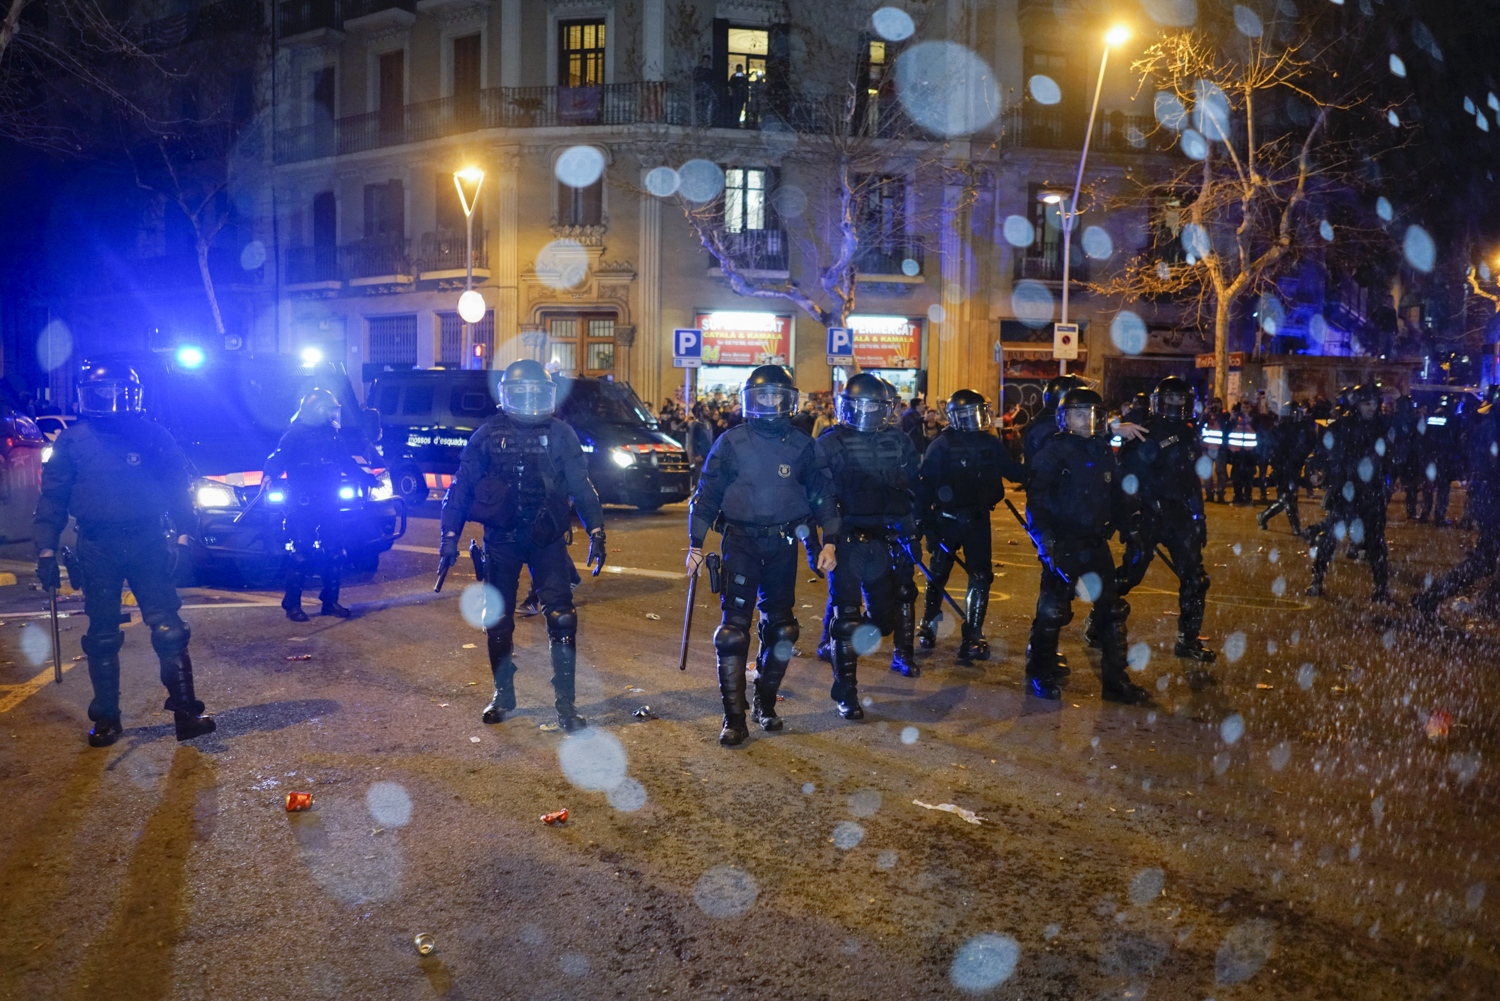 Mossos d'Esquadra on the night of exiled Catalan president Puigdemont's arrest in Germany, March. 26, 2018.